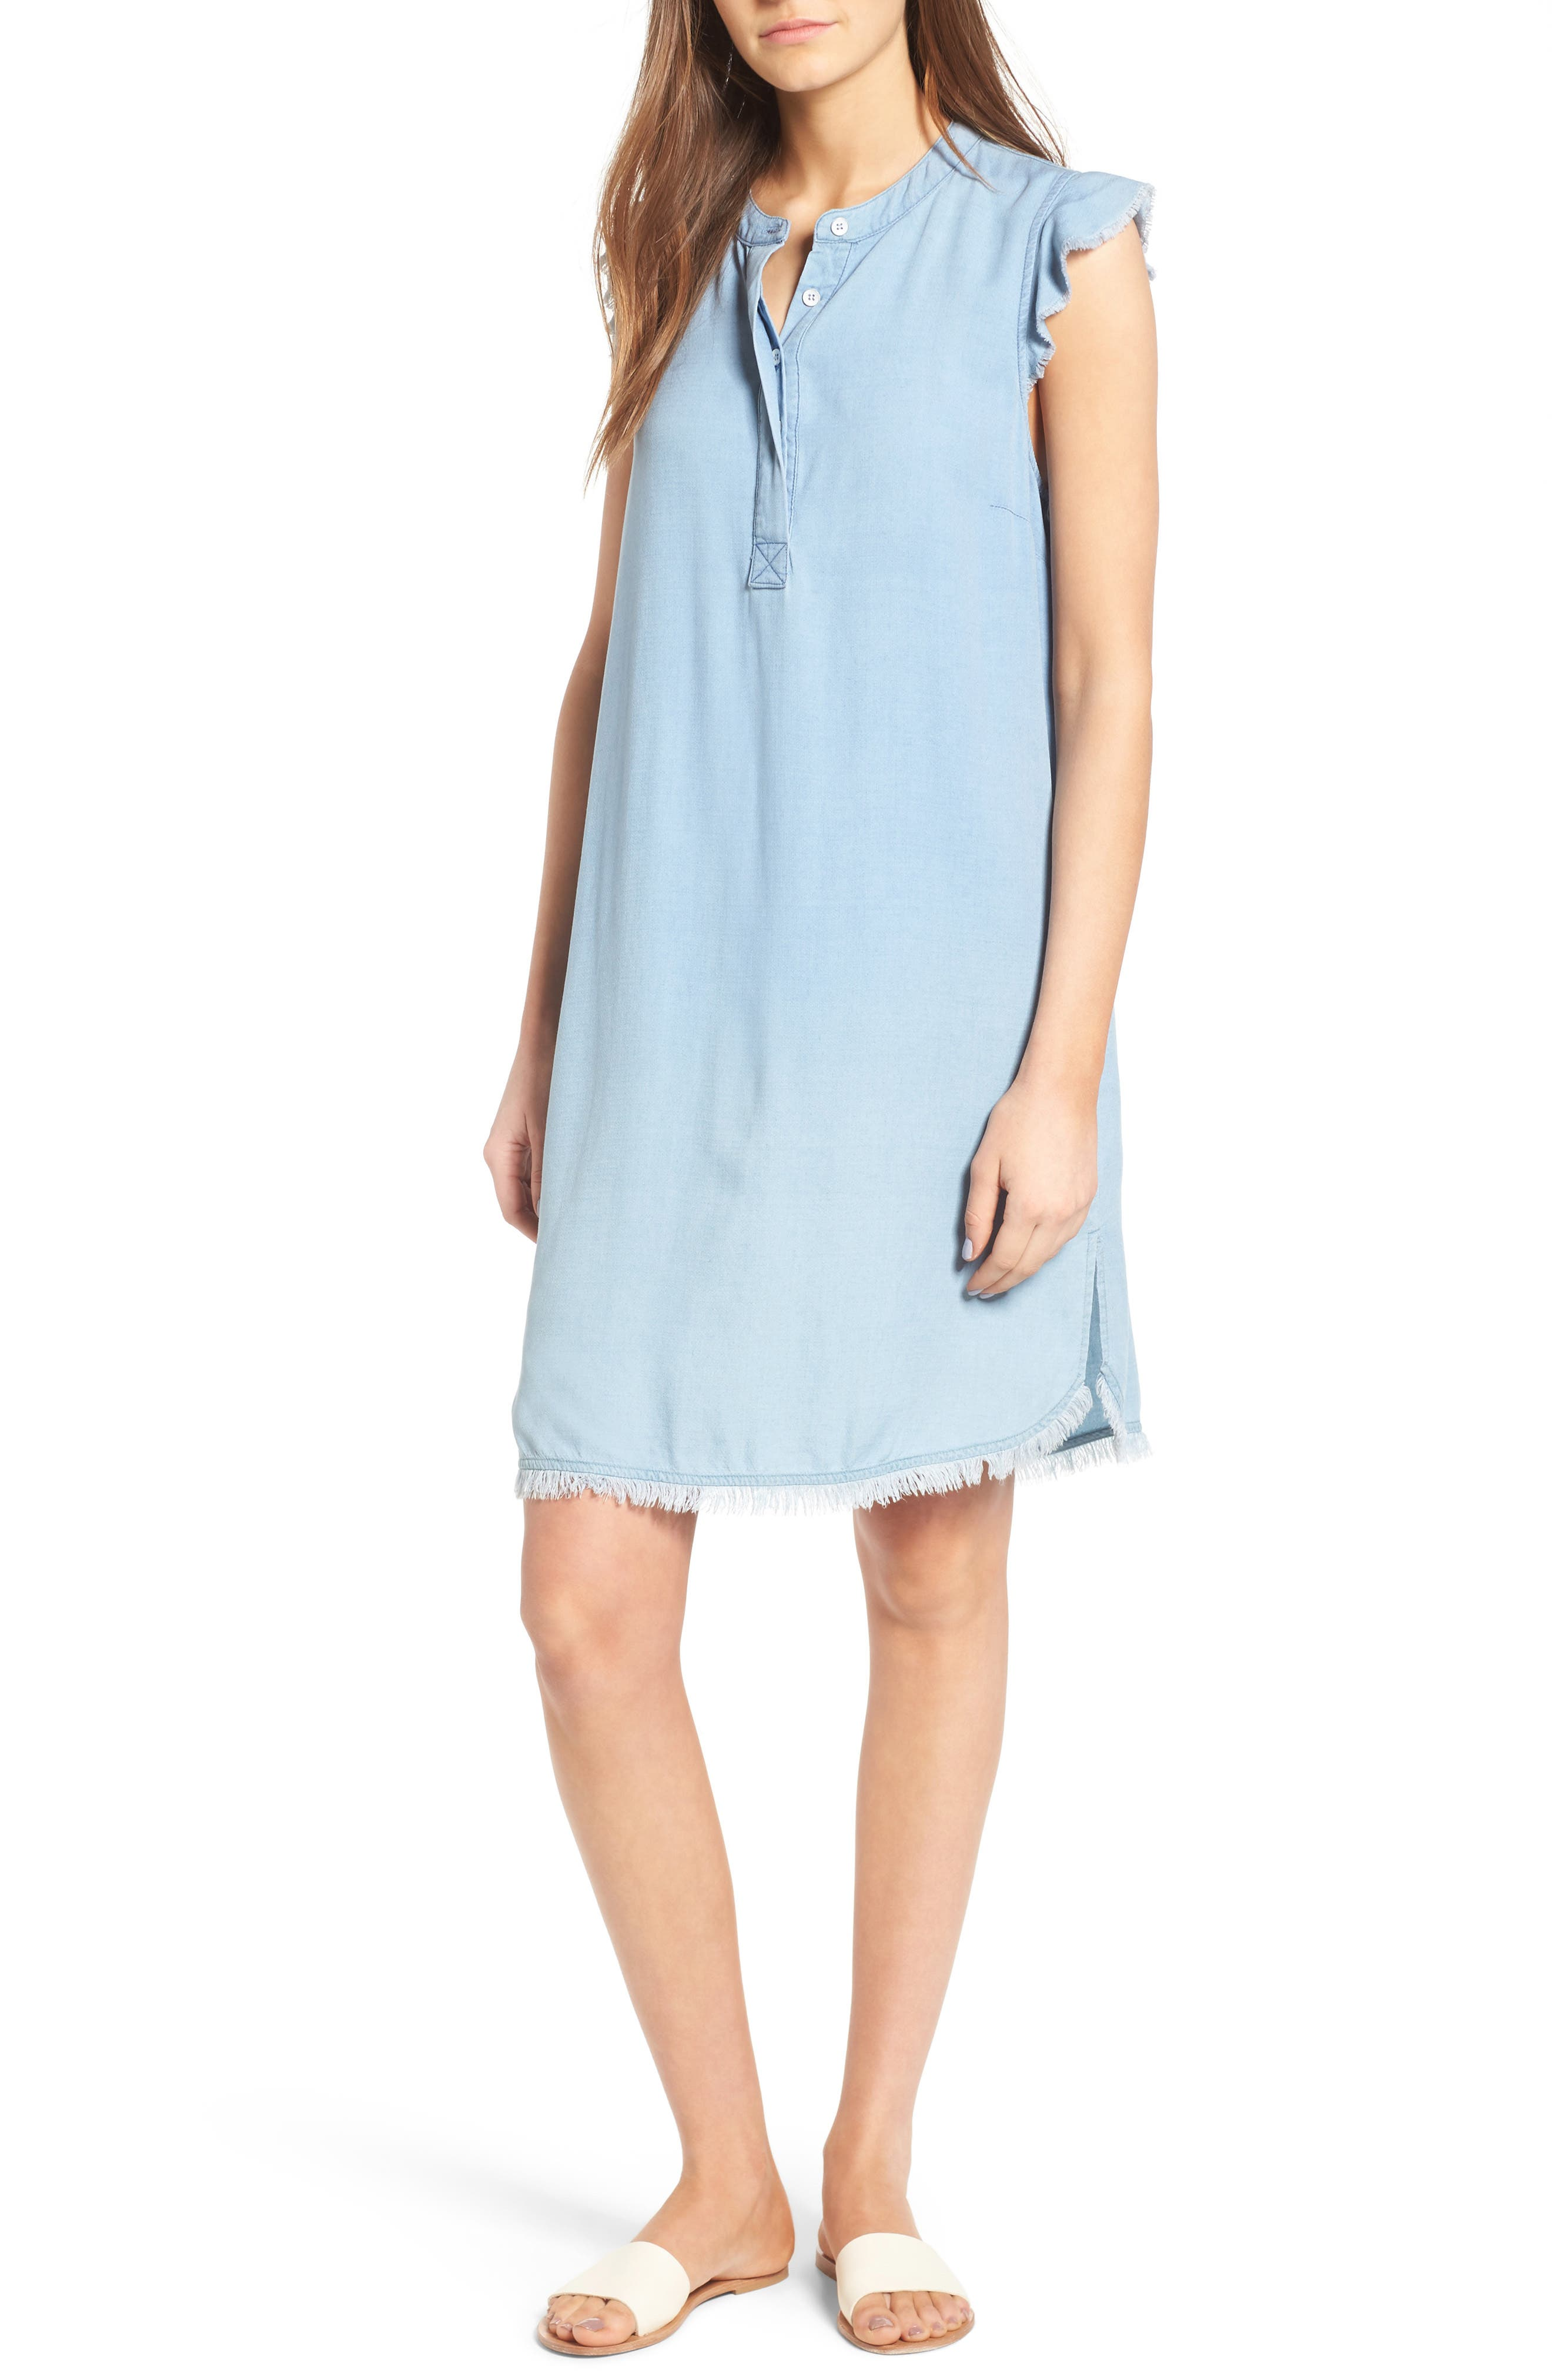 SPLENDID Chambray Shift Dress, Main, color, 400